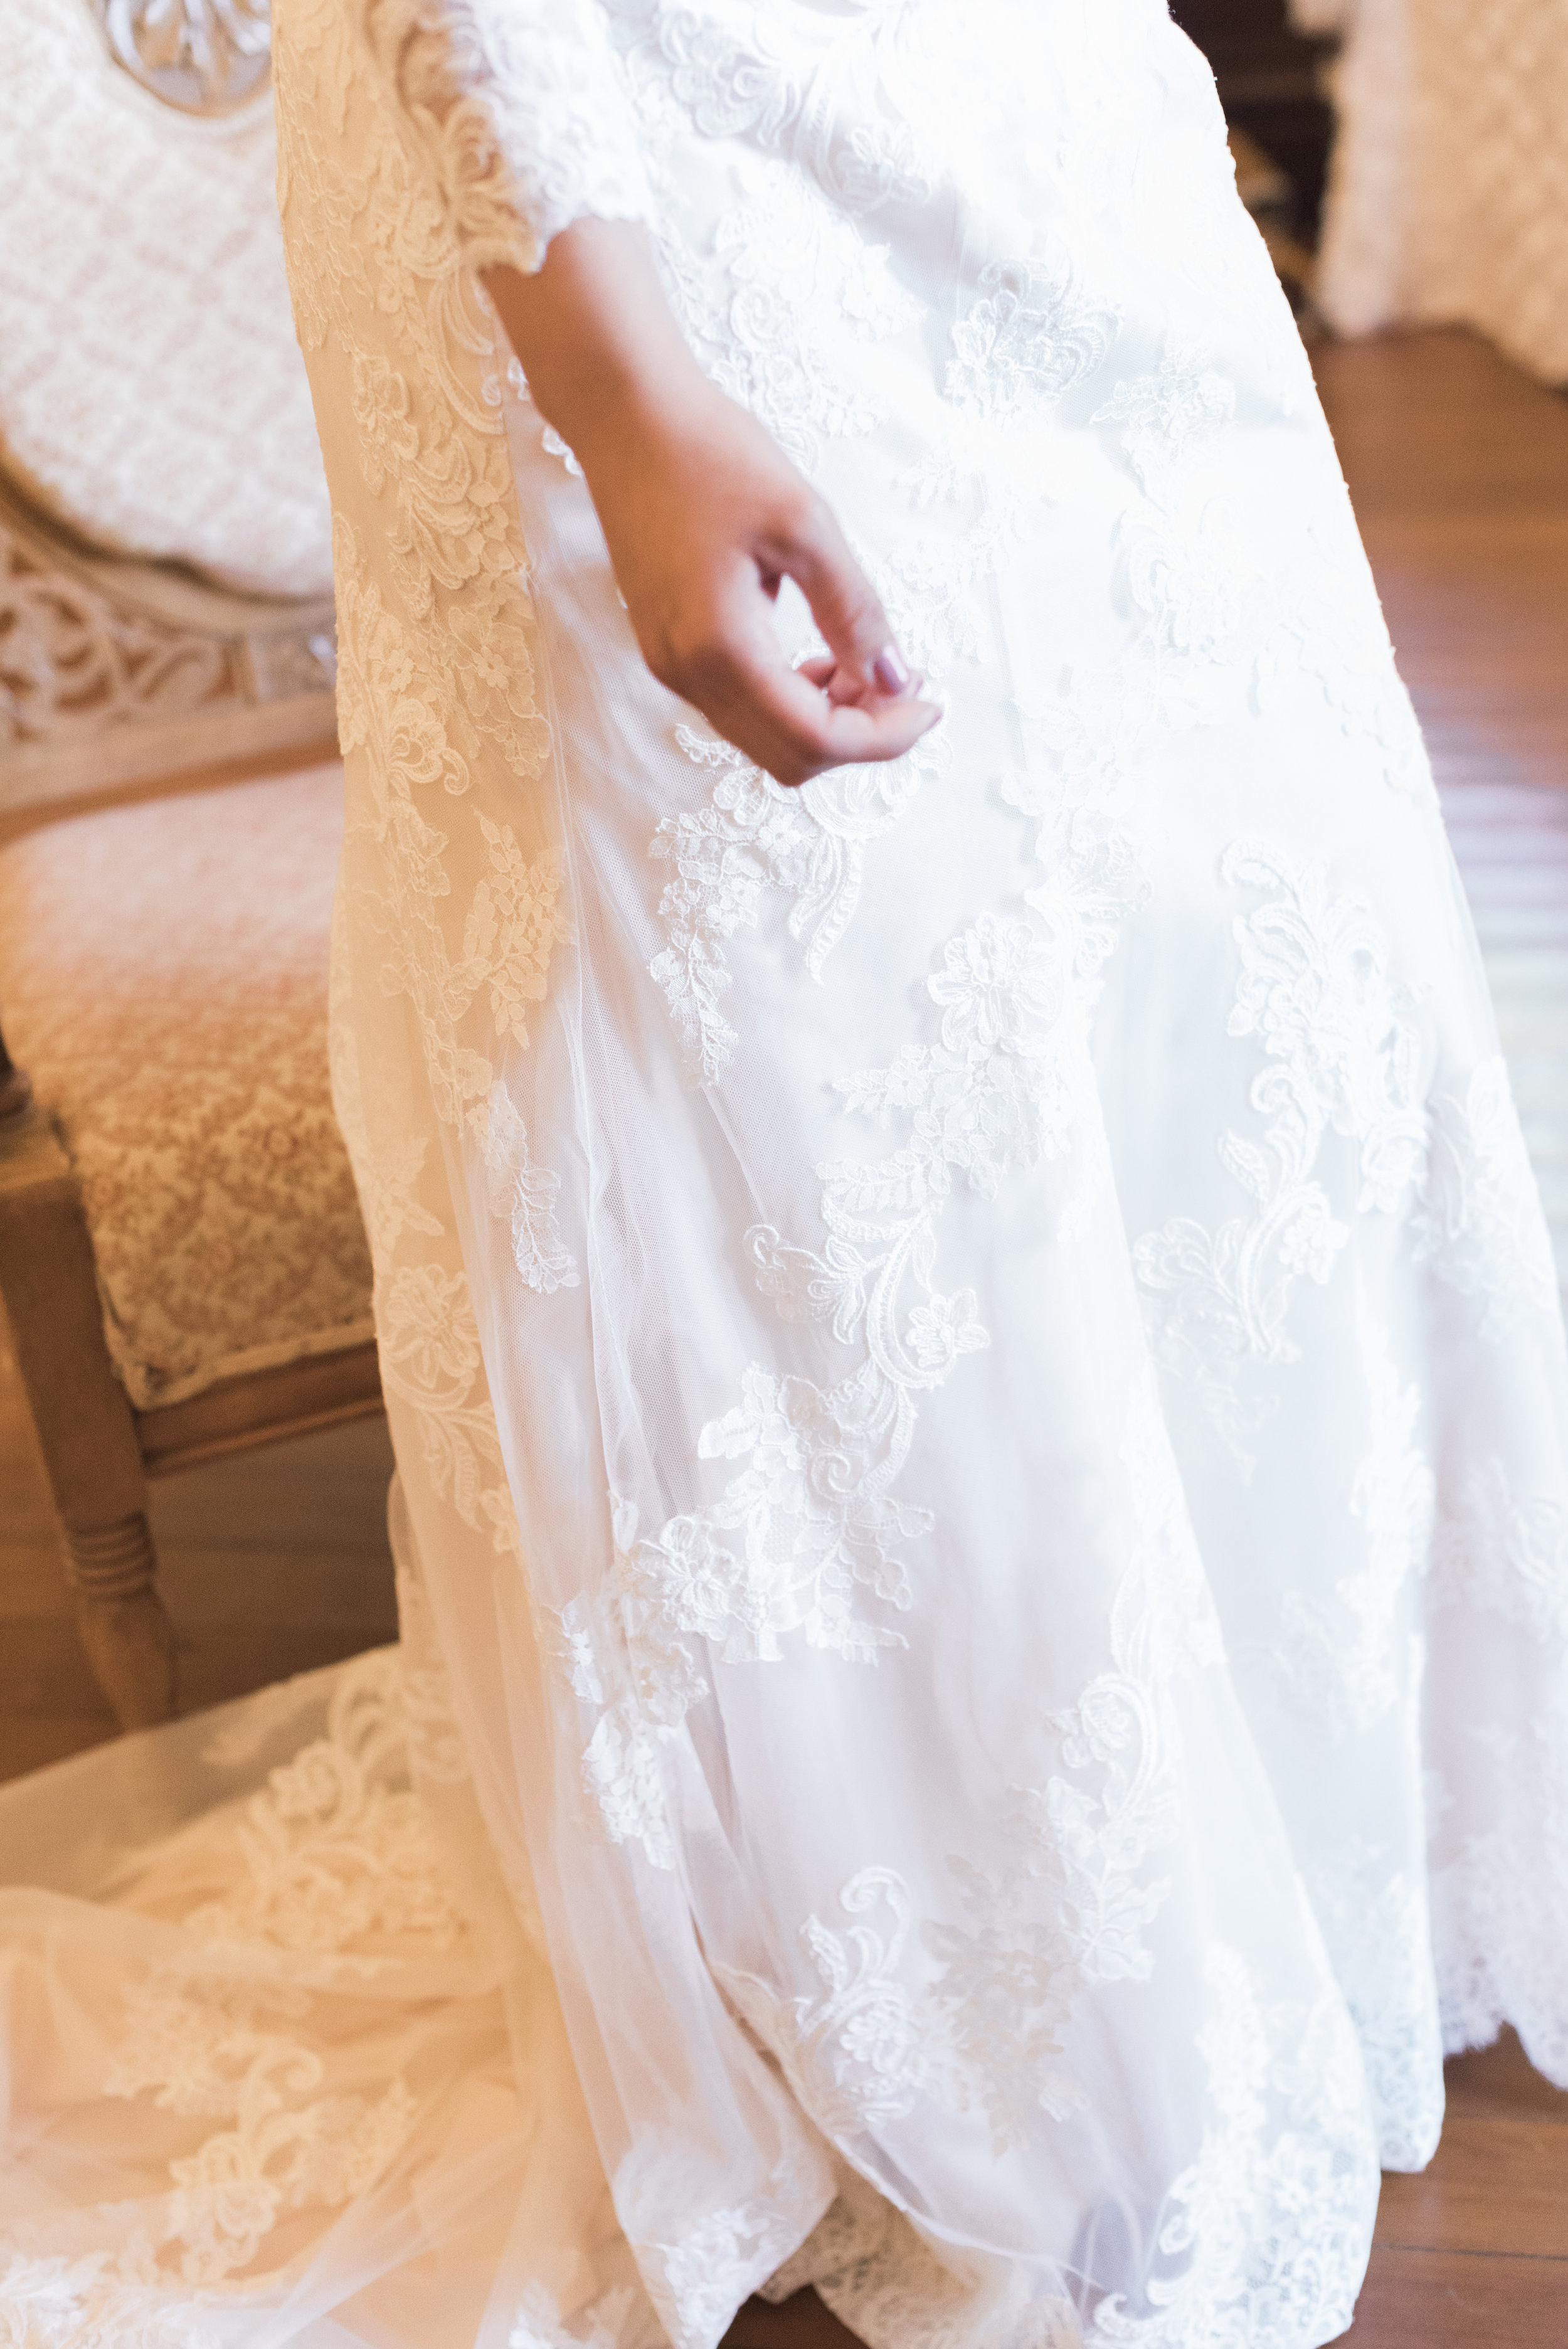 lace-details-of-the-bride's-wedding-gown.jpg